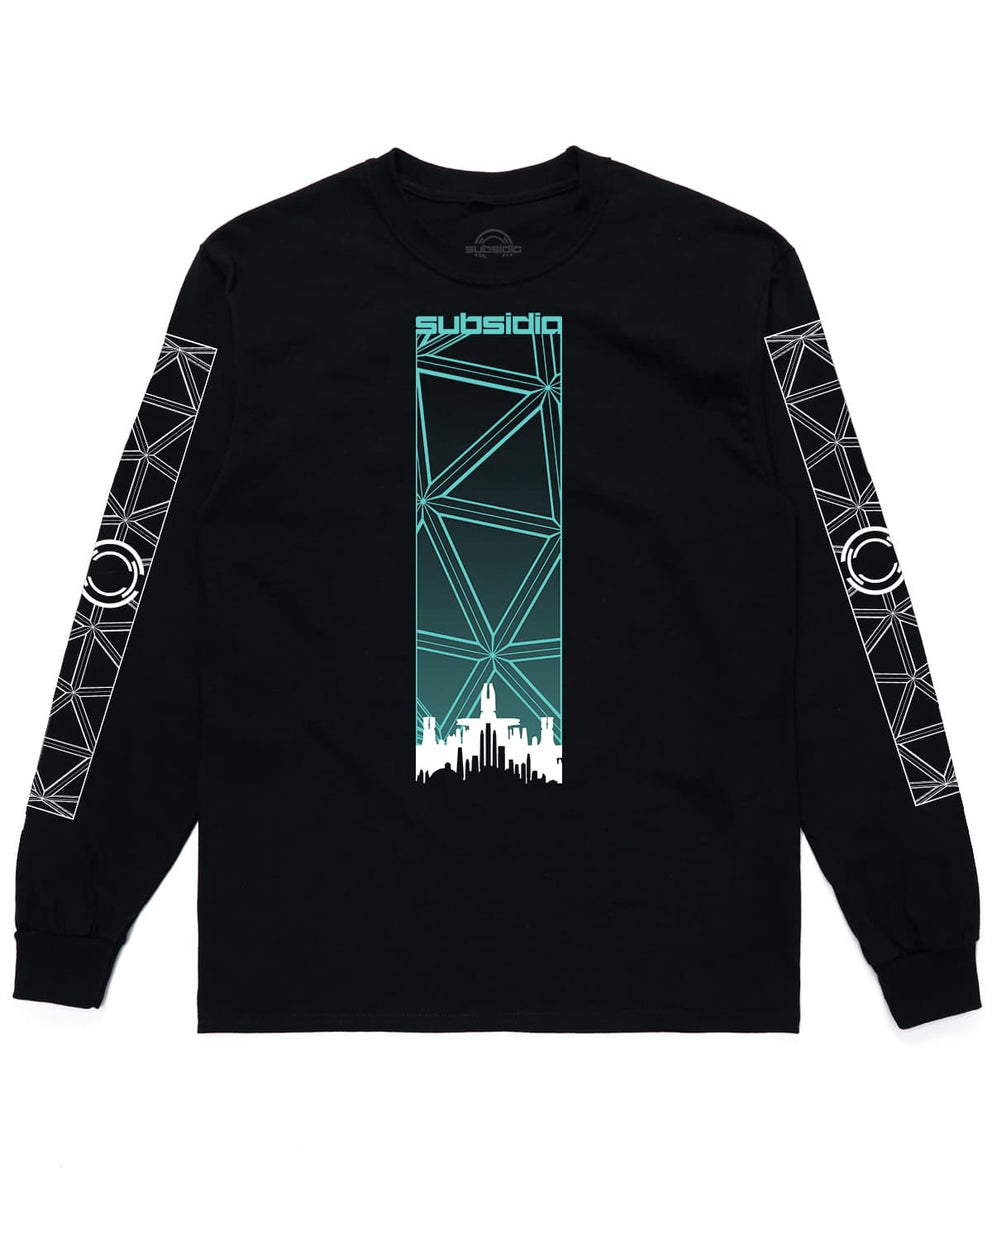 Subsidia 'Geometric' Long Sleeve Tee